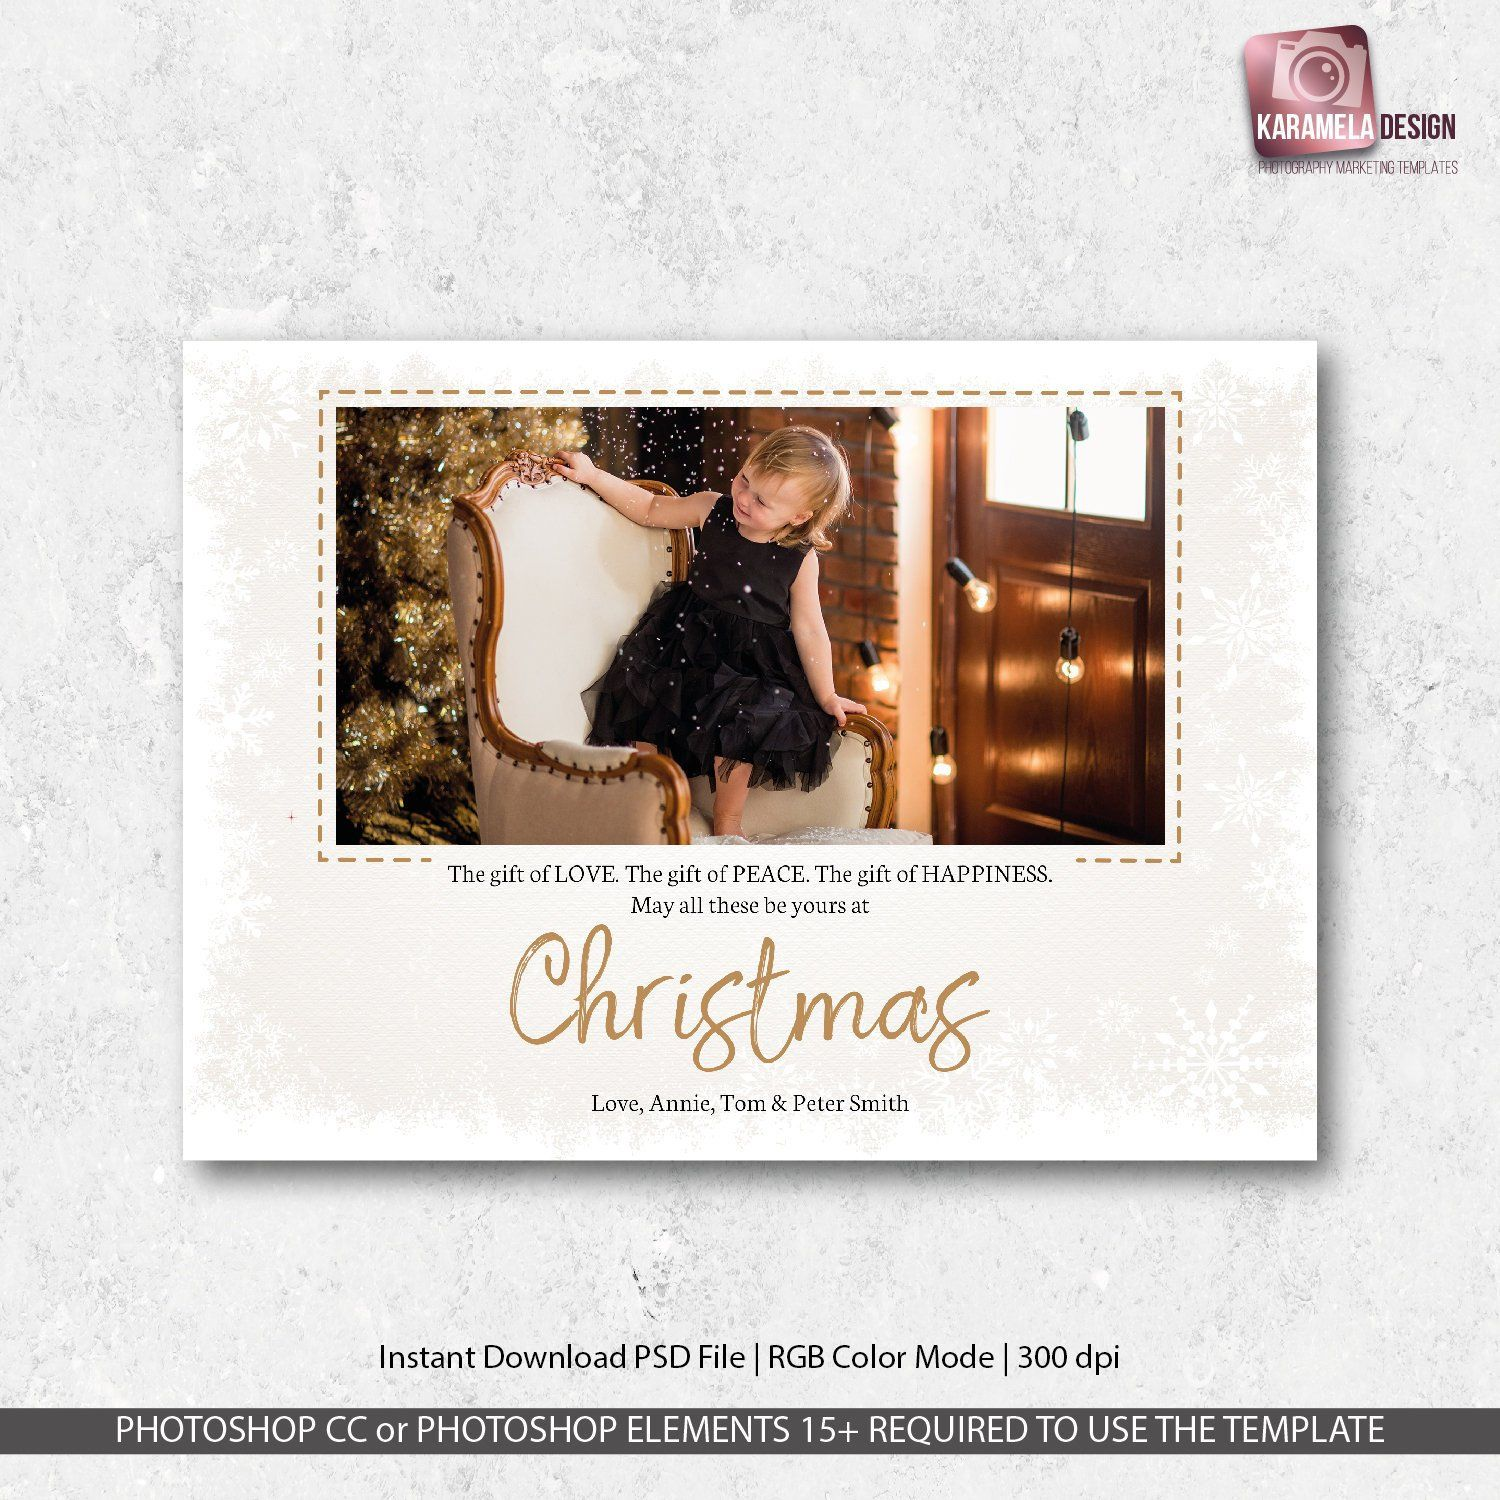 7x5 Printable Greeting Card Template Christmas Card With Photo Etsy Holiday Photo Cards Design Printable Greeting Cards Holiday Design Card